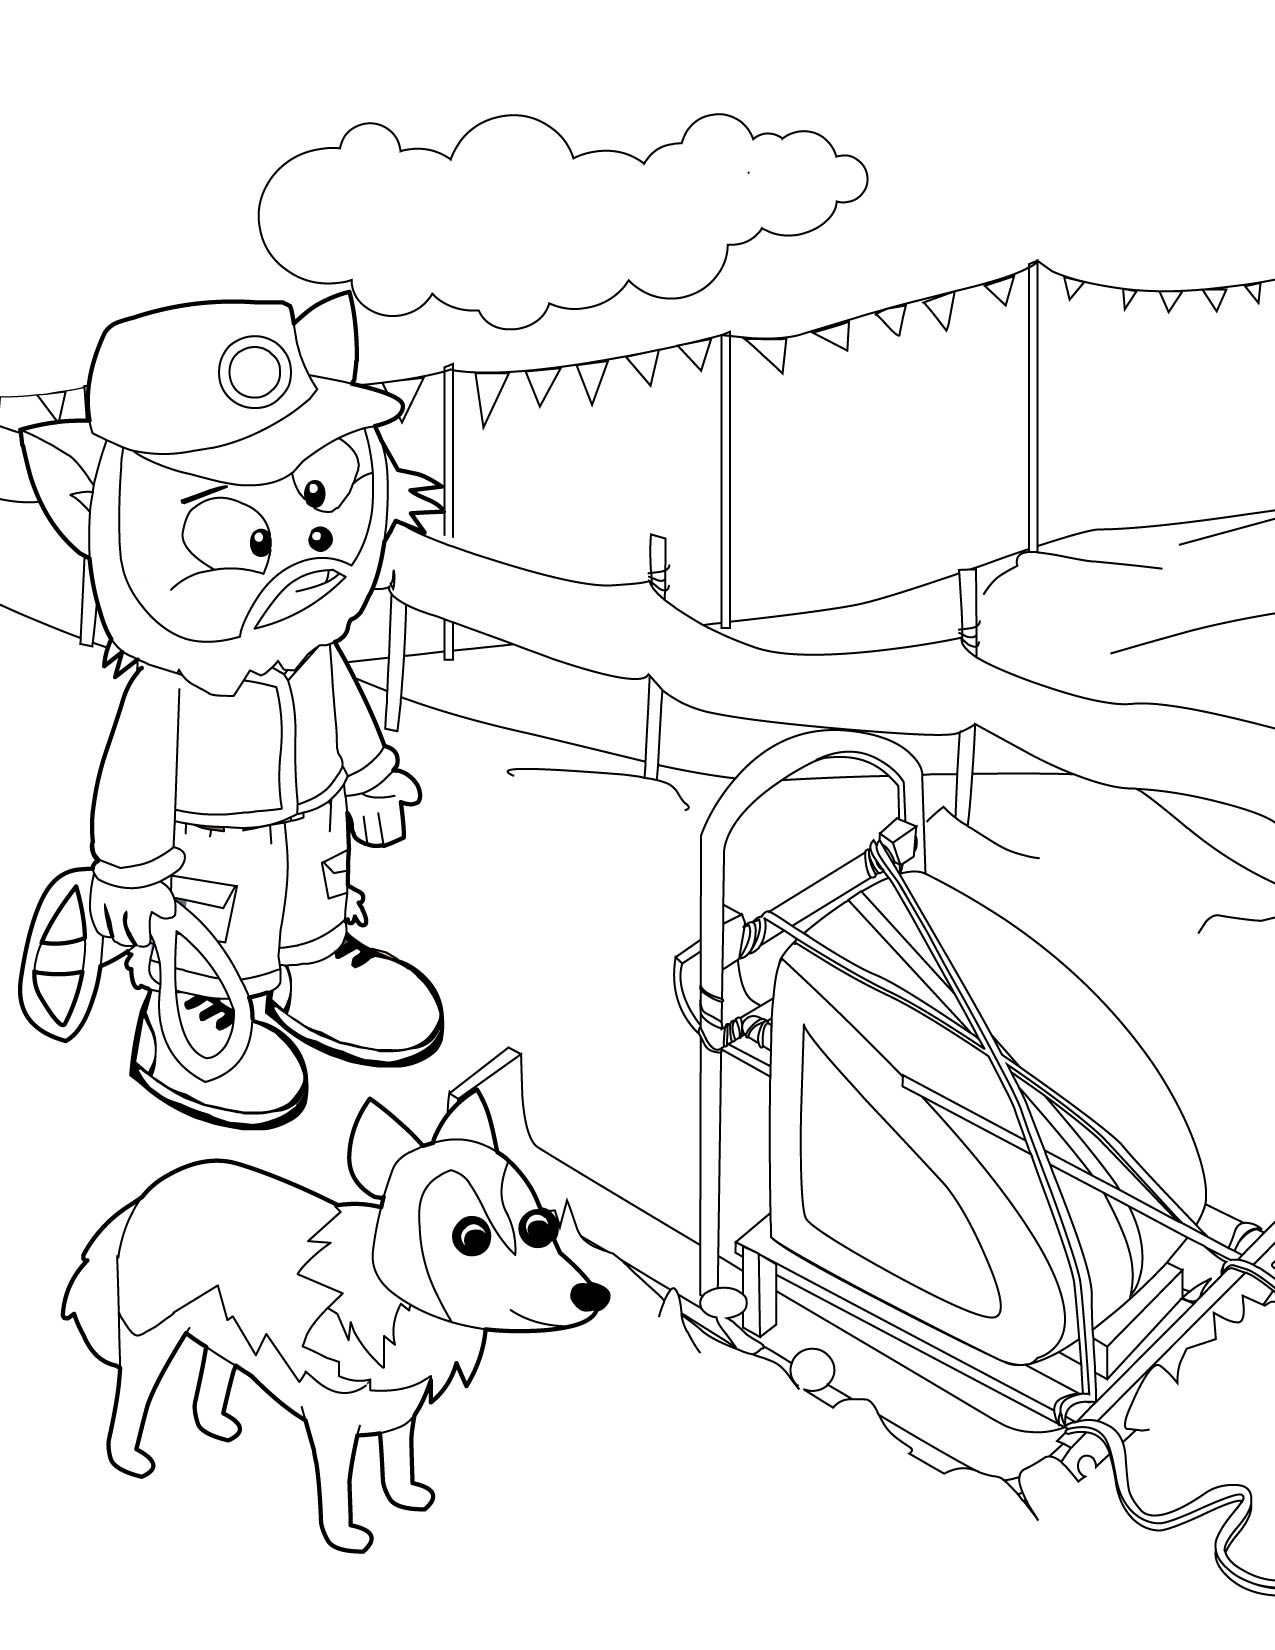 Dog Sled Racer Coloring Page